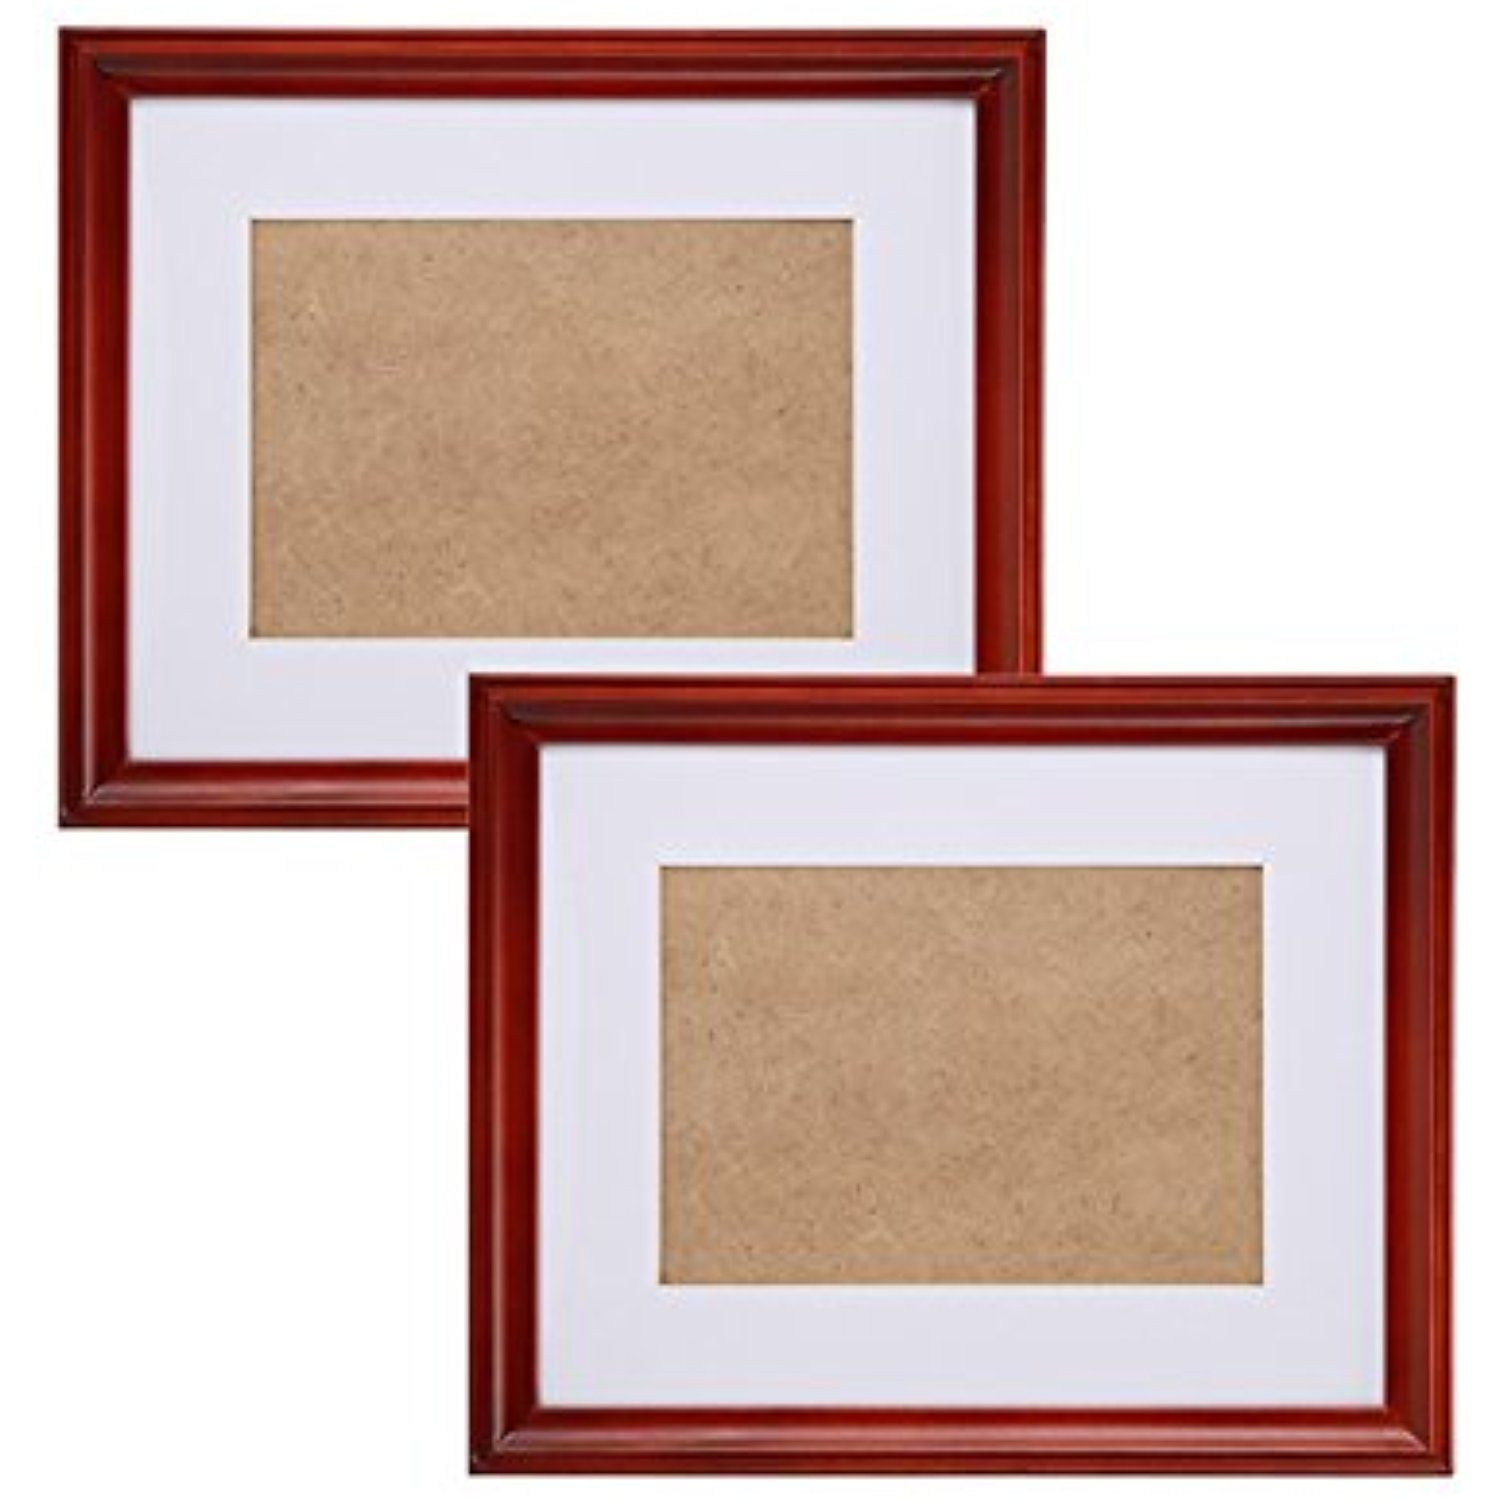 Fastnova 6x8 inch Narrow Cherry Red Wood Picture Frames Made to ...